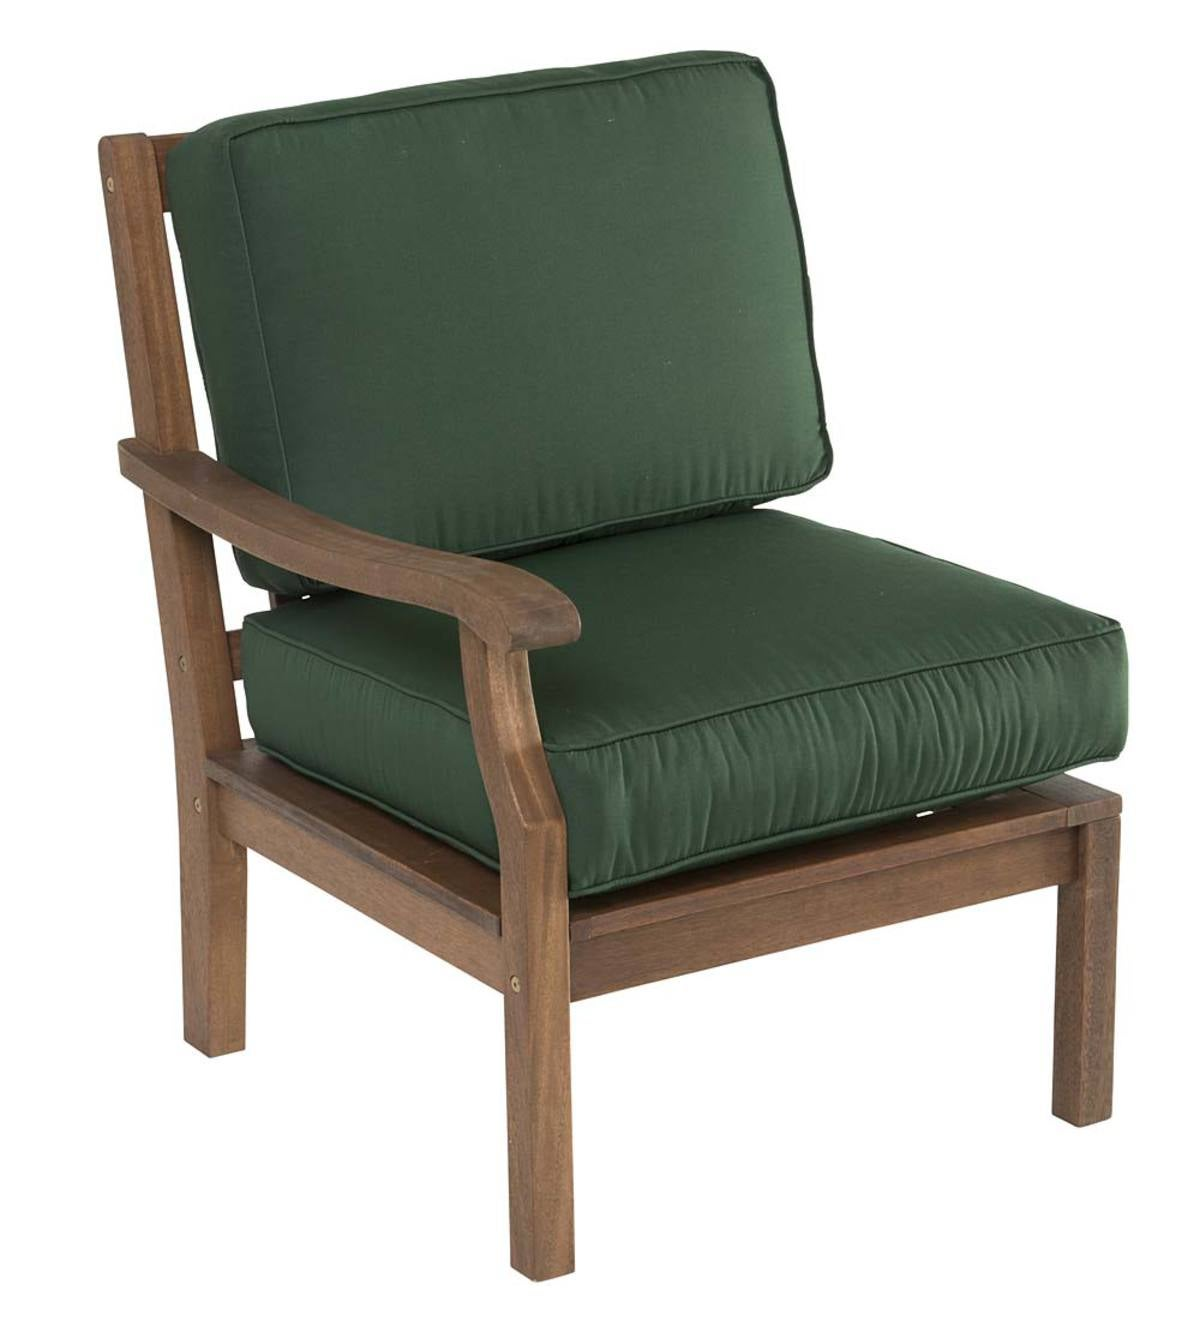 Claremont Sectional Chair with Right Arm with Cushions - Forest Green